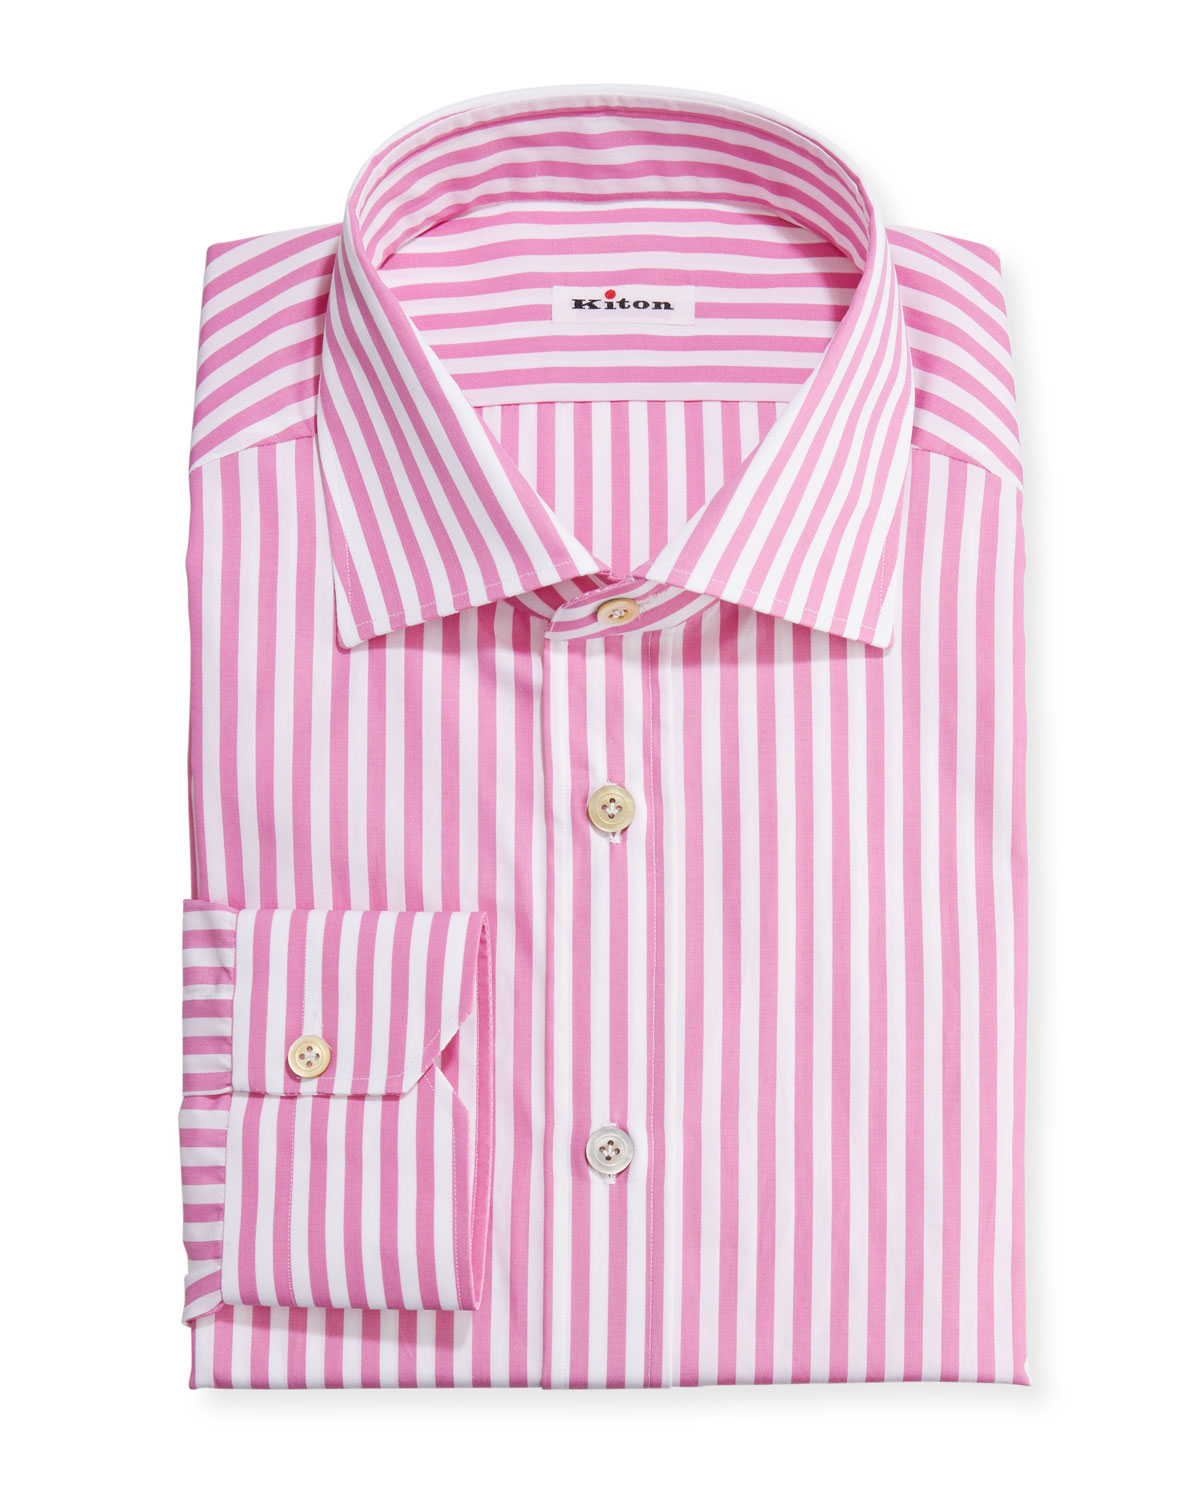 Kiton Men's Bengal Stripe Linen Dress Shirt